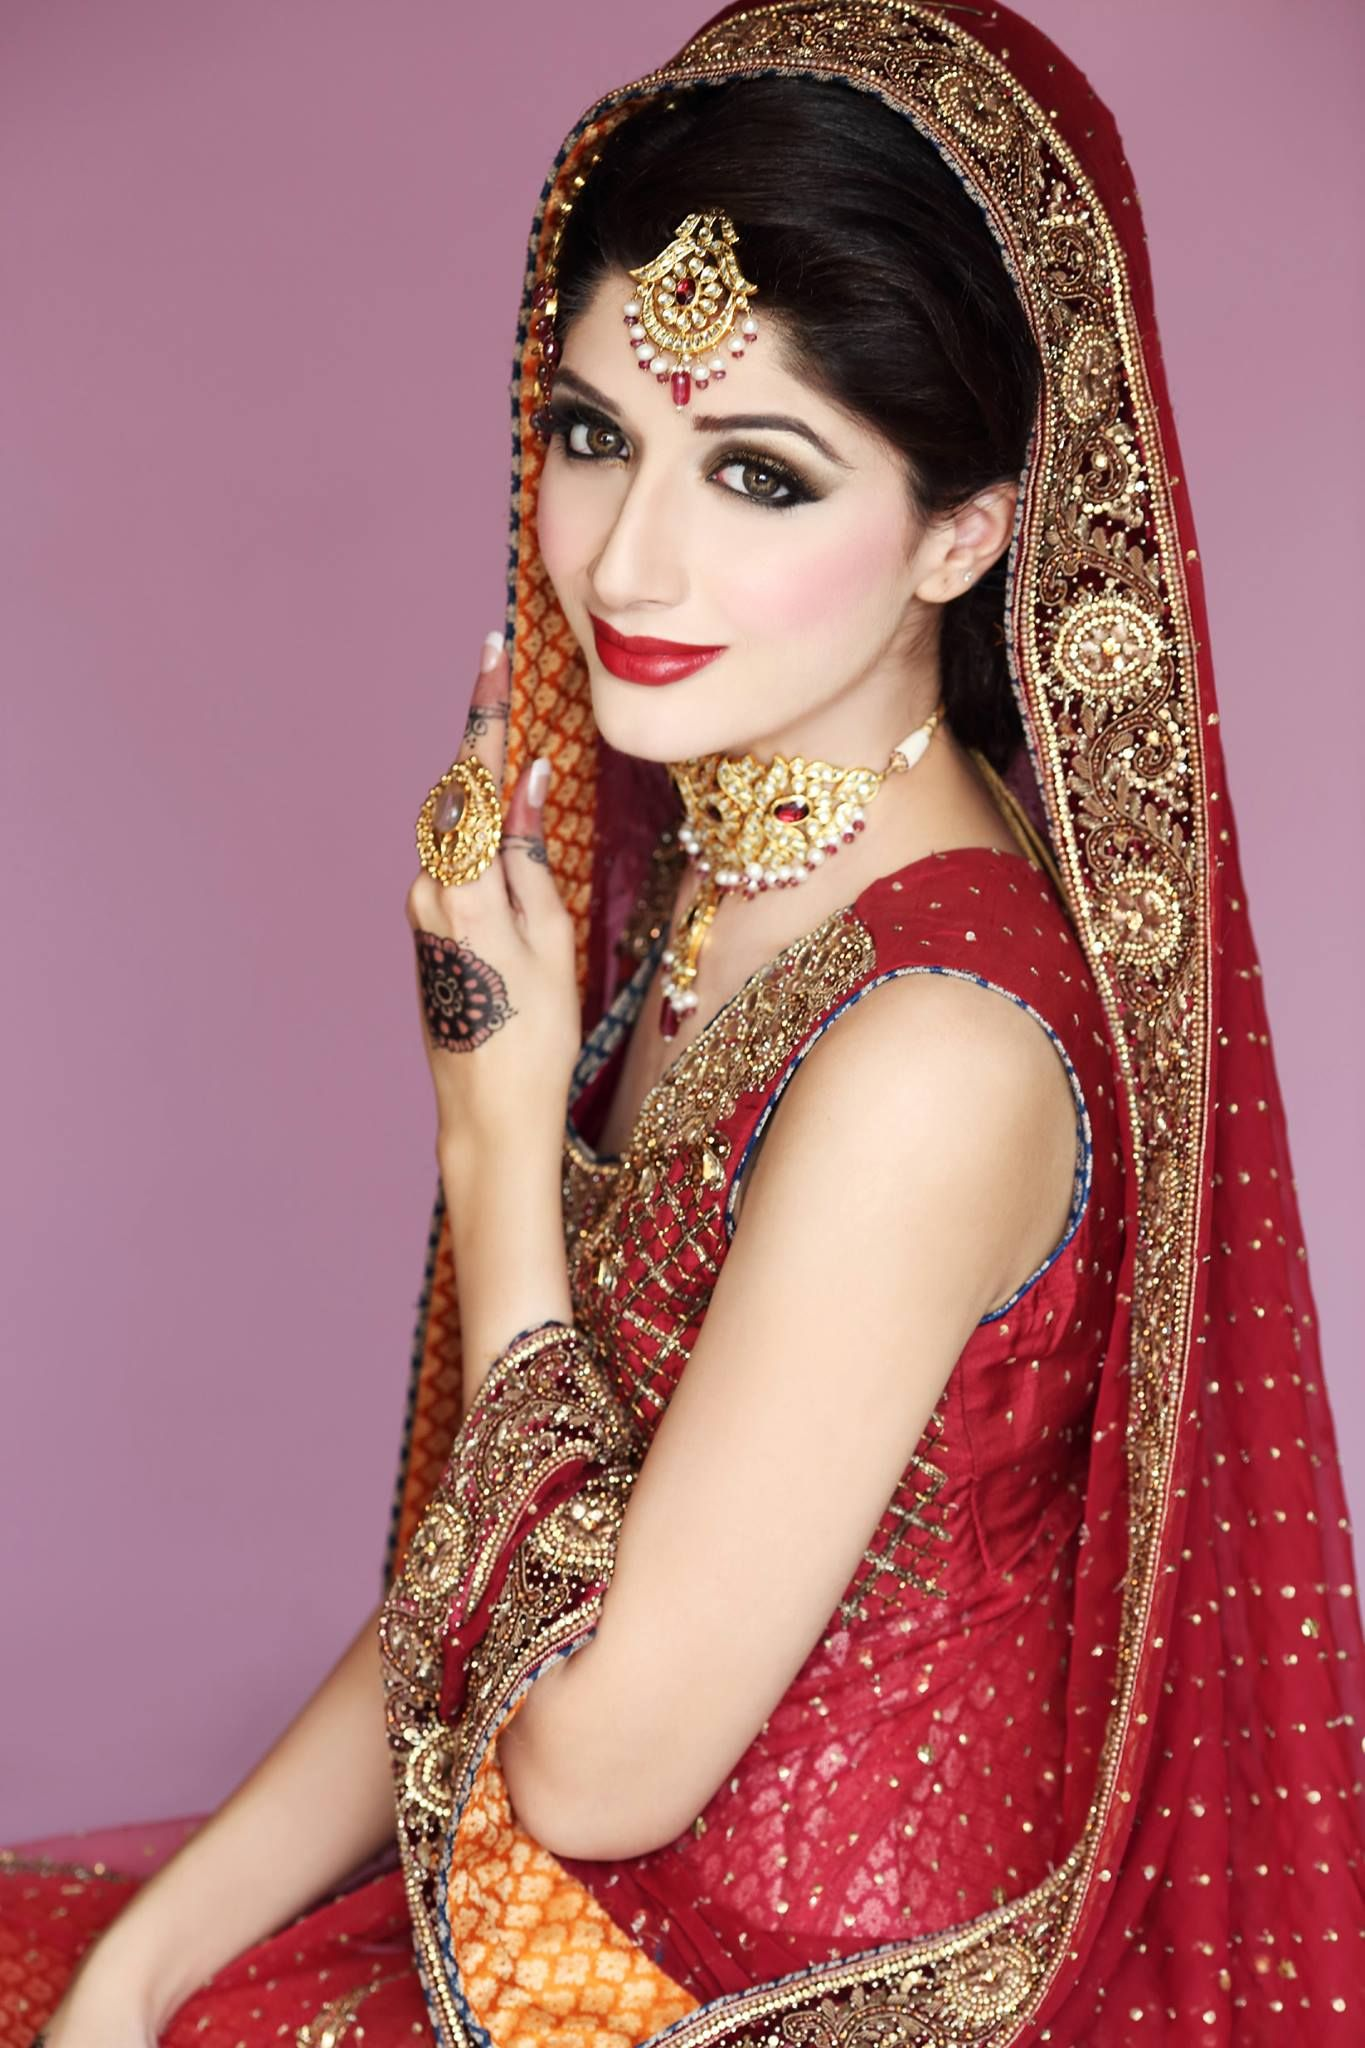 gorgeous barat look , marwa looks stunning, makeup by mariam khawaja